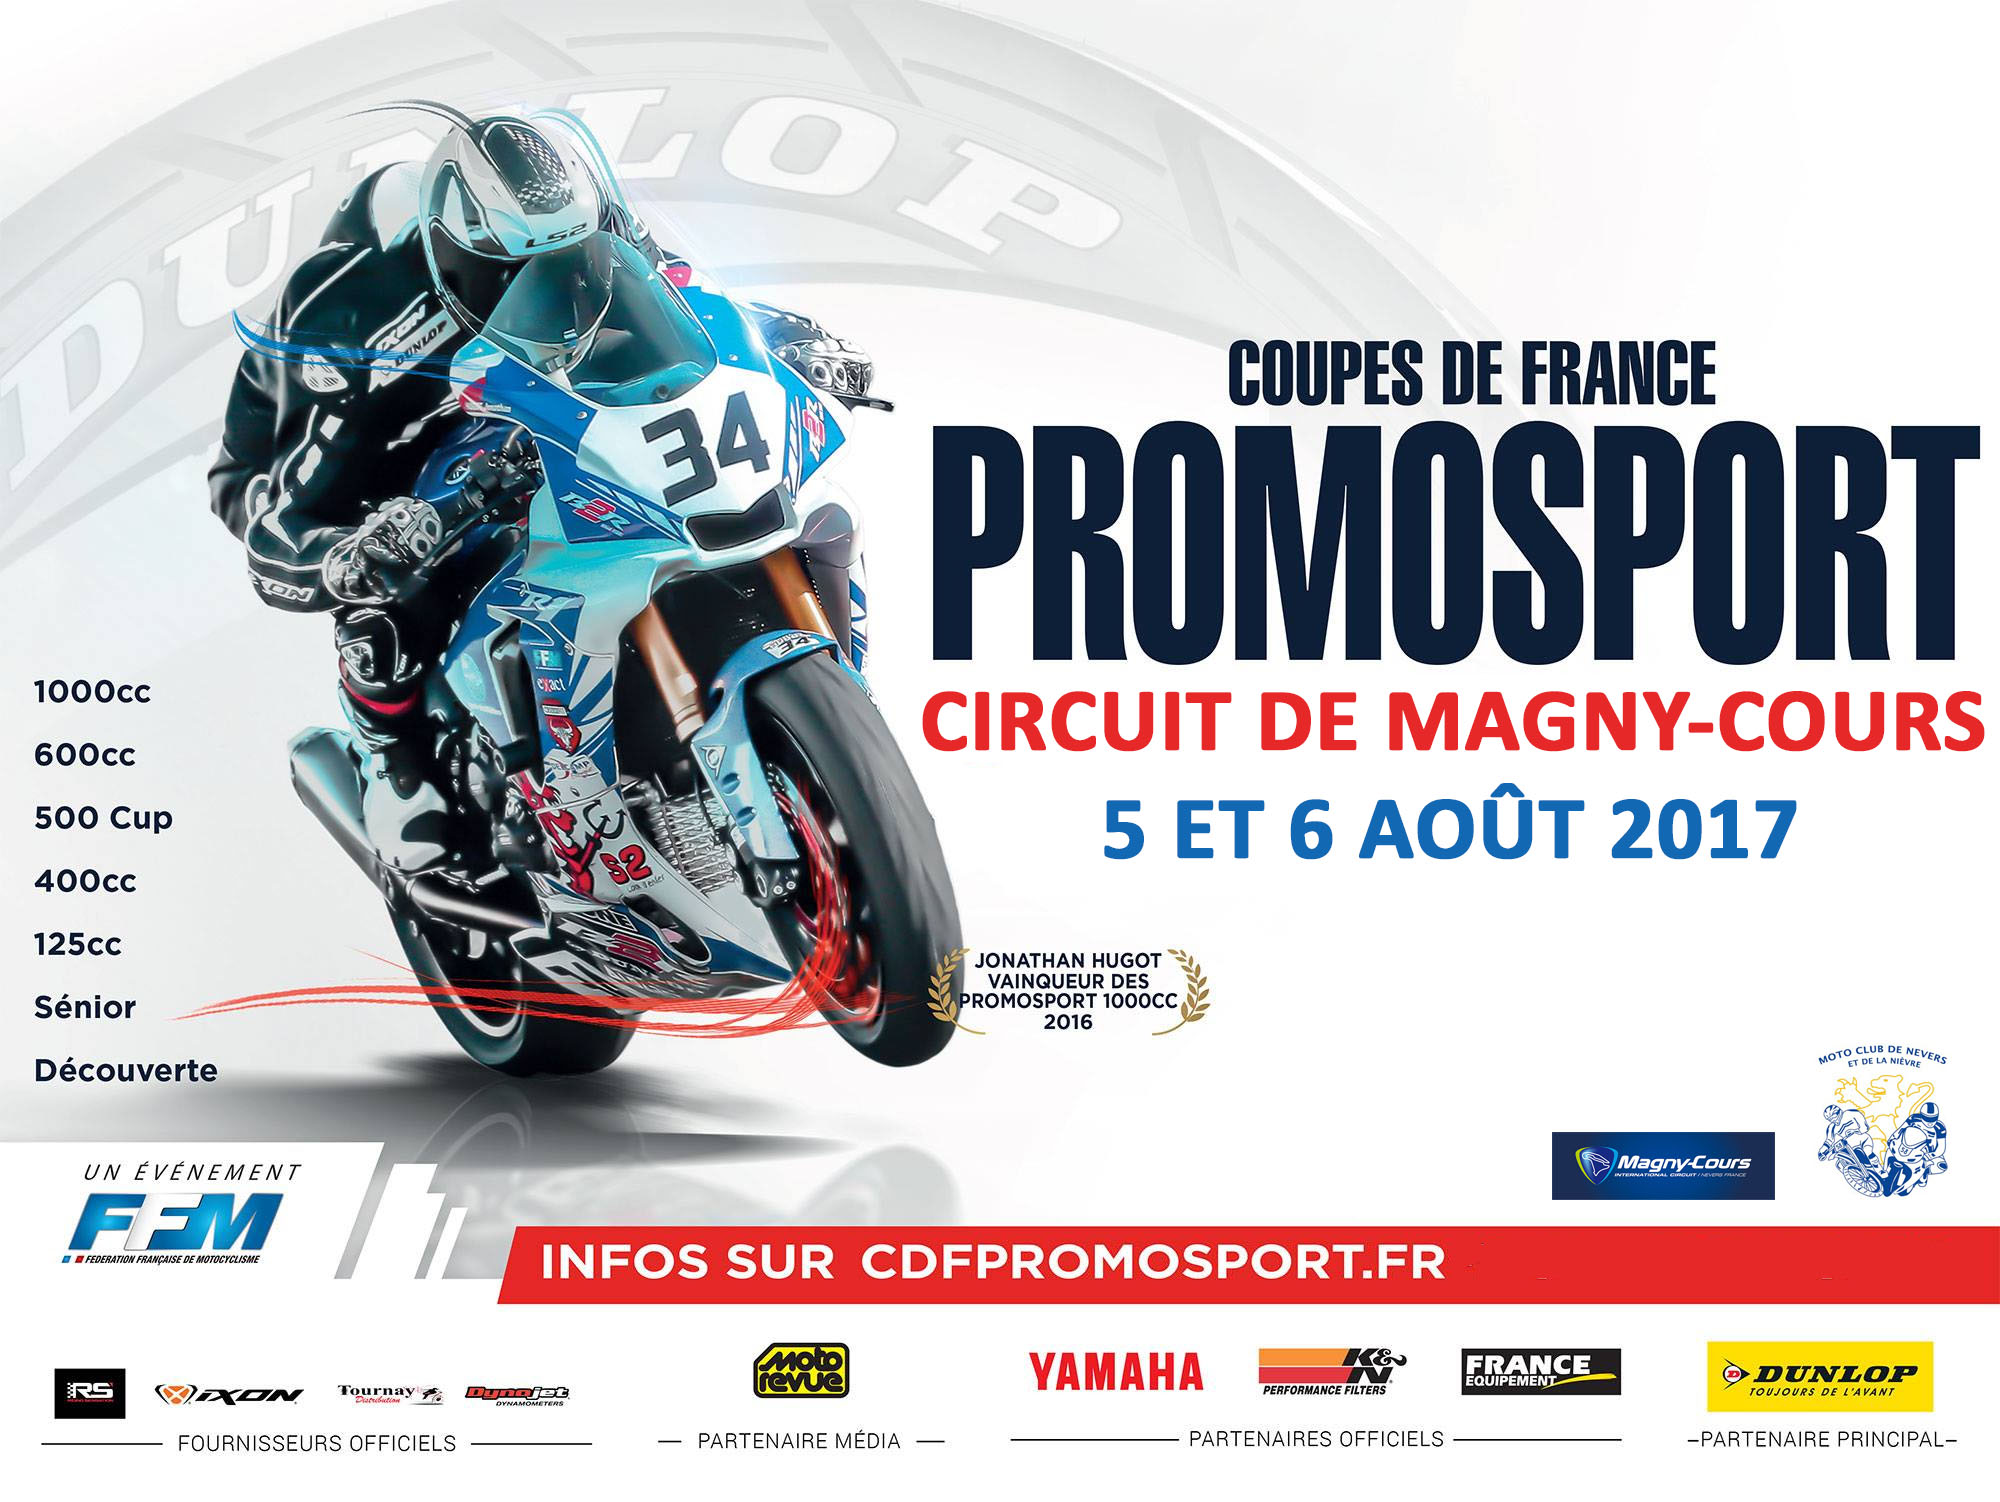 Coupes de france de promosport magny cours 2017 mc nevers - Coupes de france promosport ...